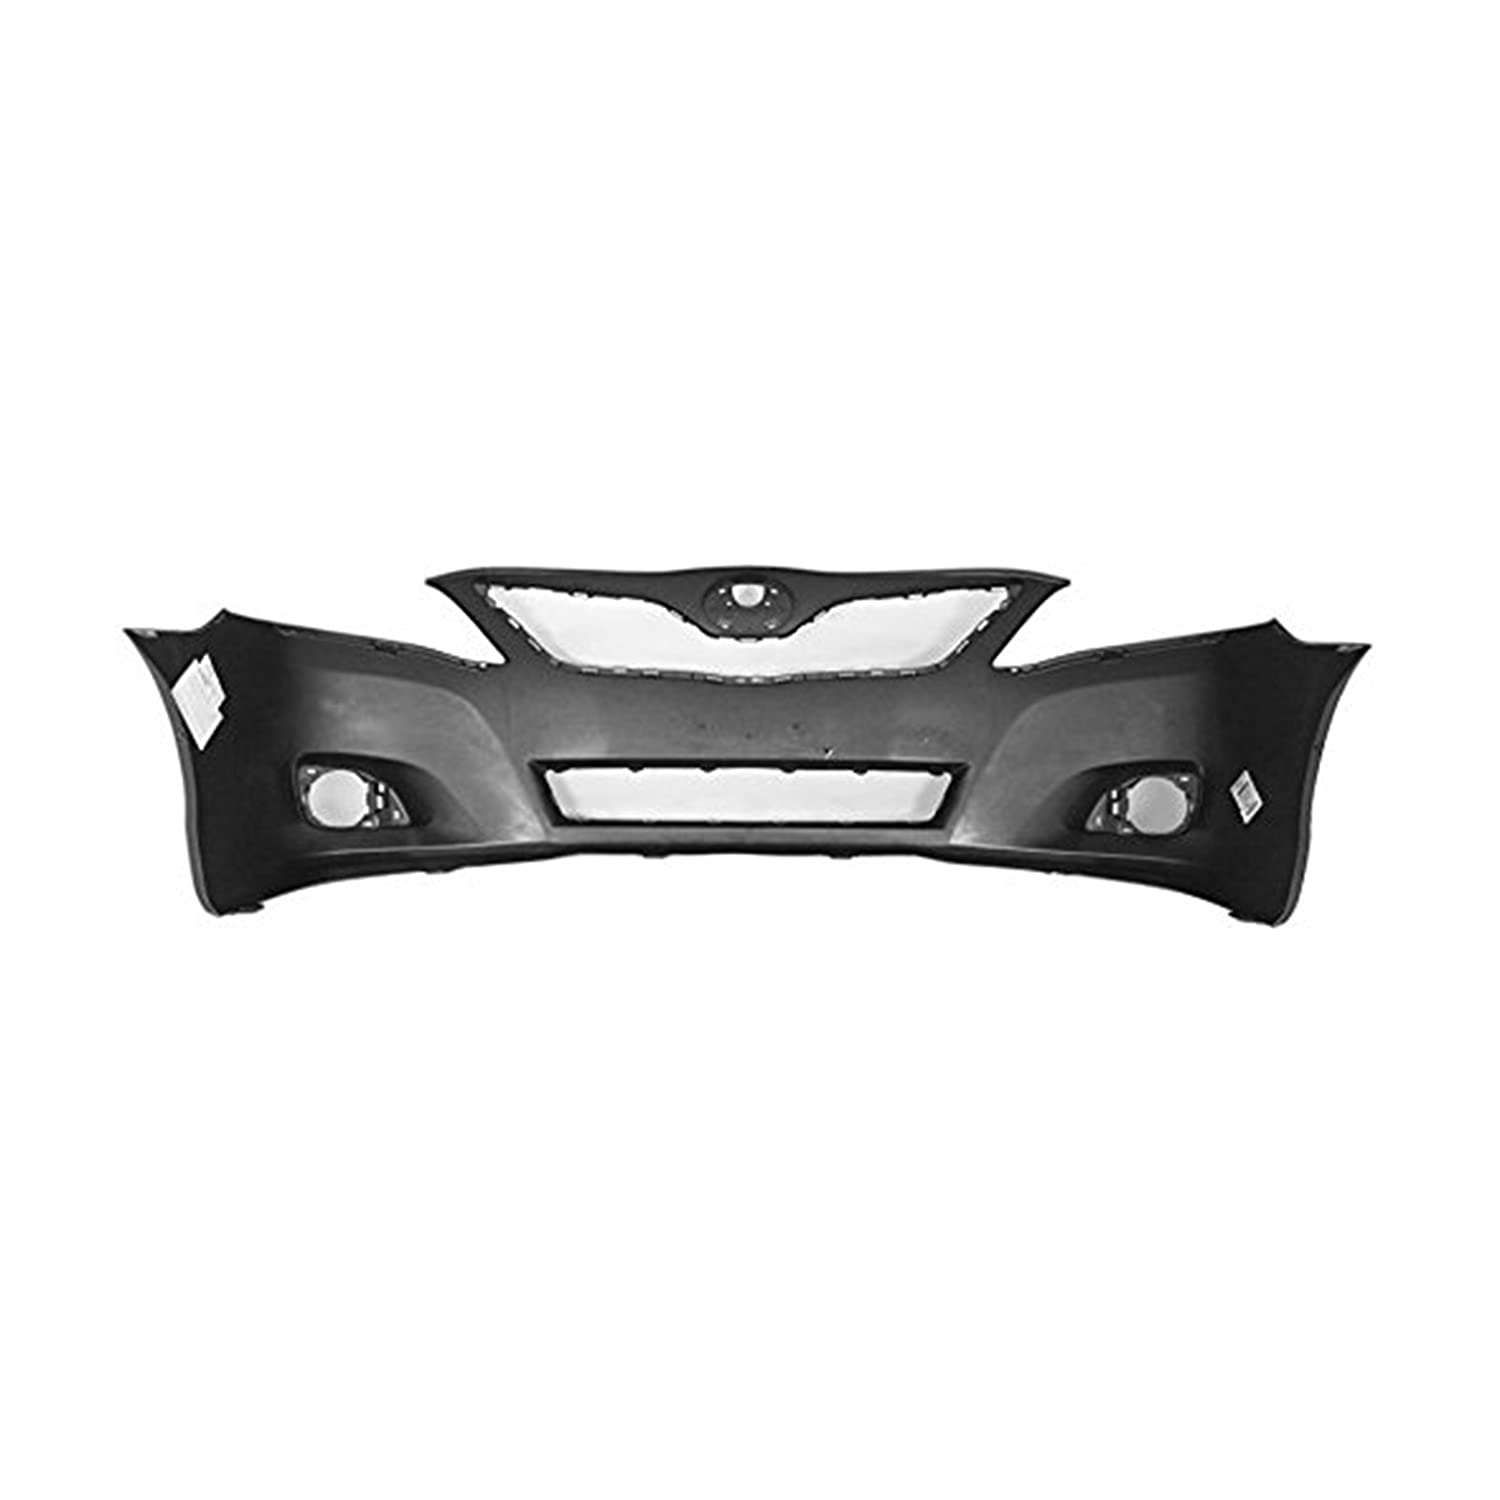 Front Bumper Cover Fascia for 2010 2011 Toyota Camry USA Built LE XLE 10 11 MBI AUTO TO1000356 Primered